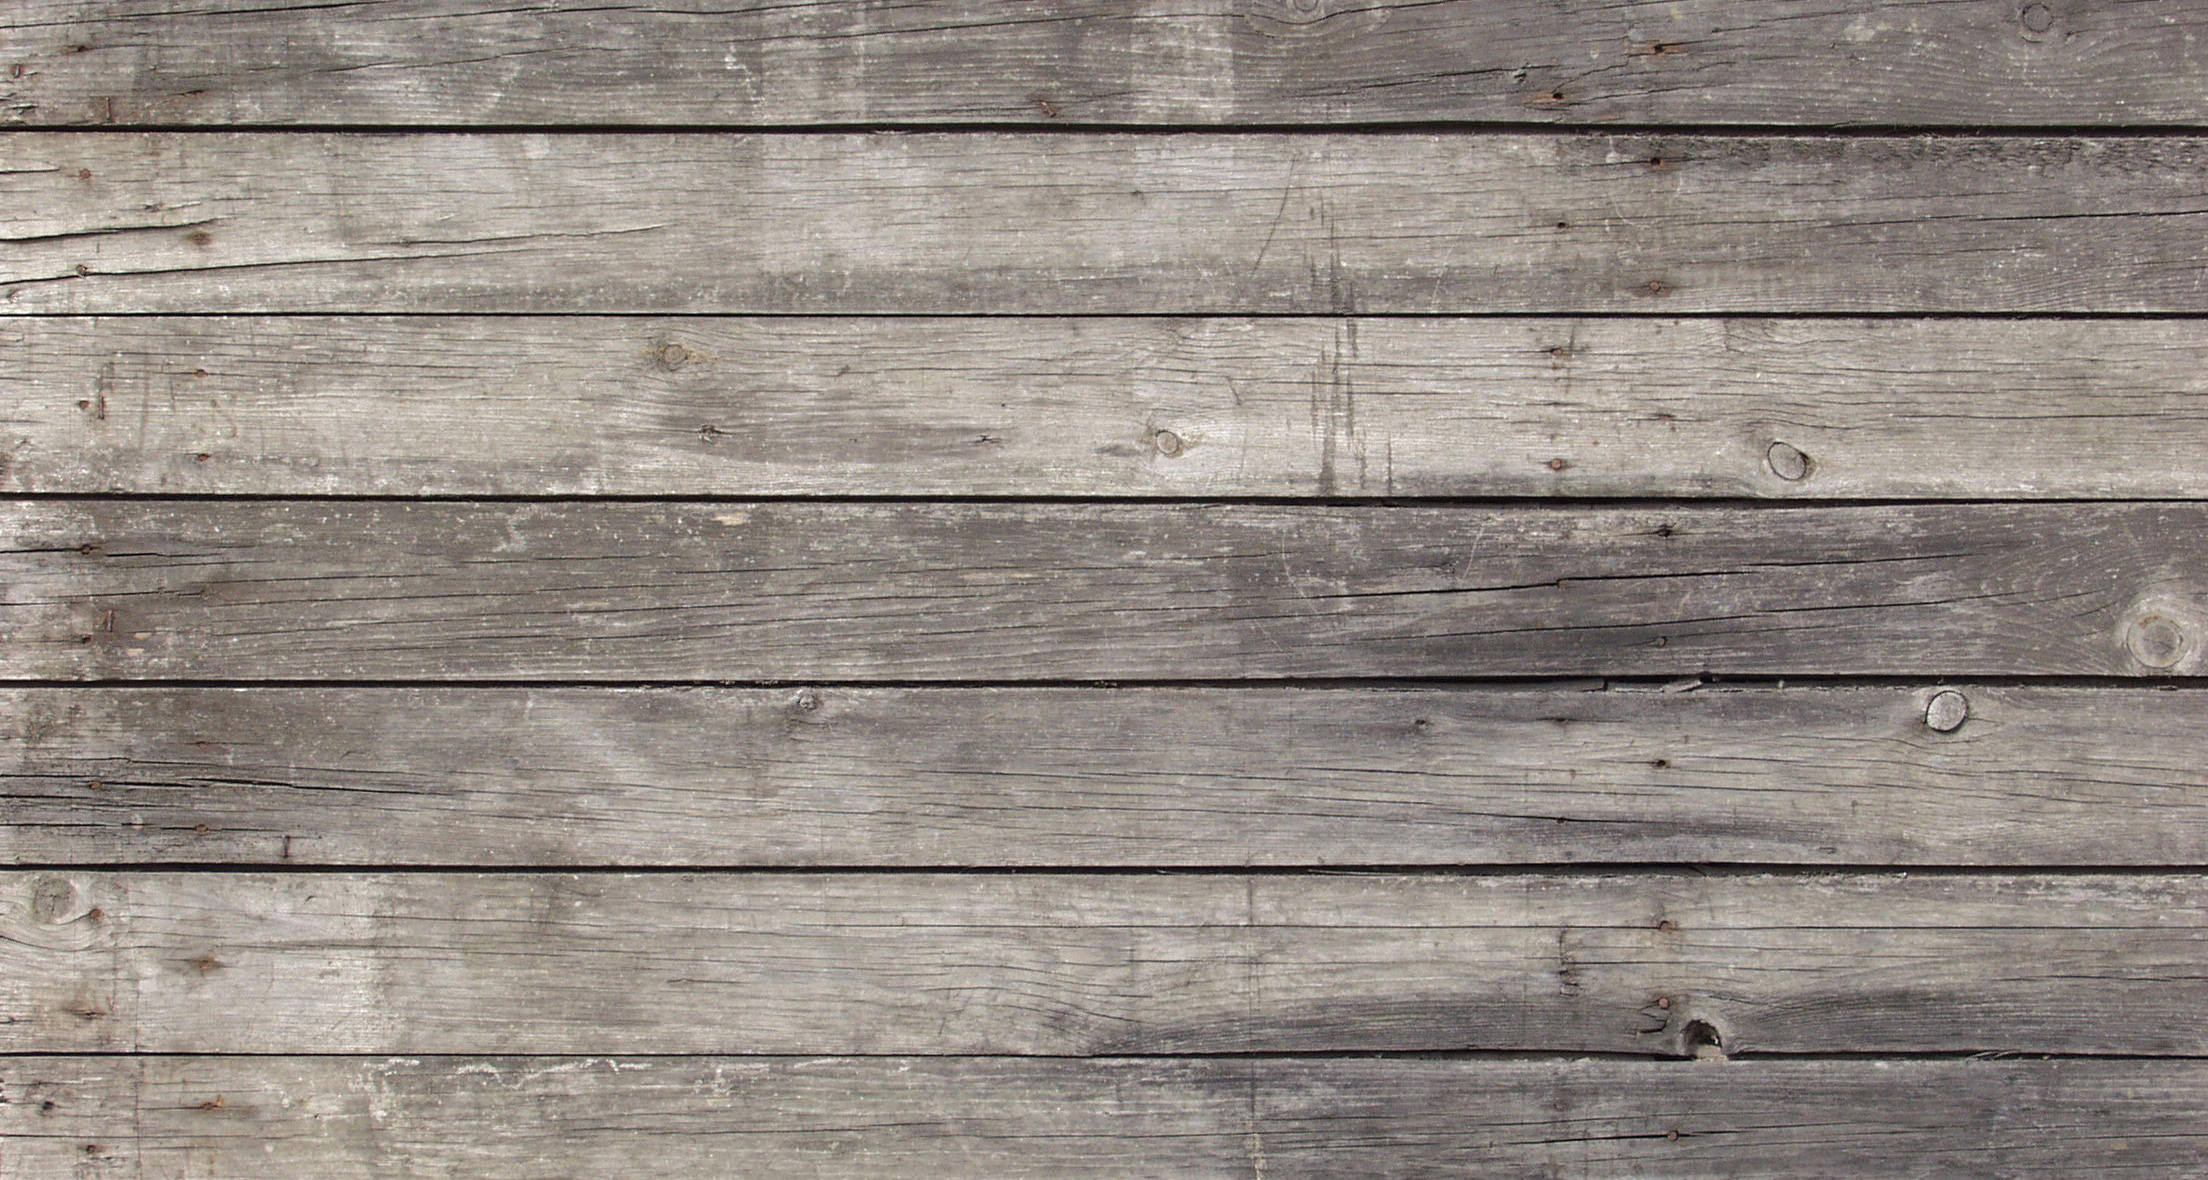 Free Download Plank Wooden Texture 2208x1180 For Your